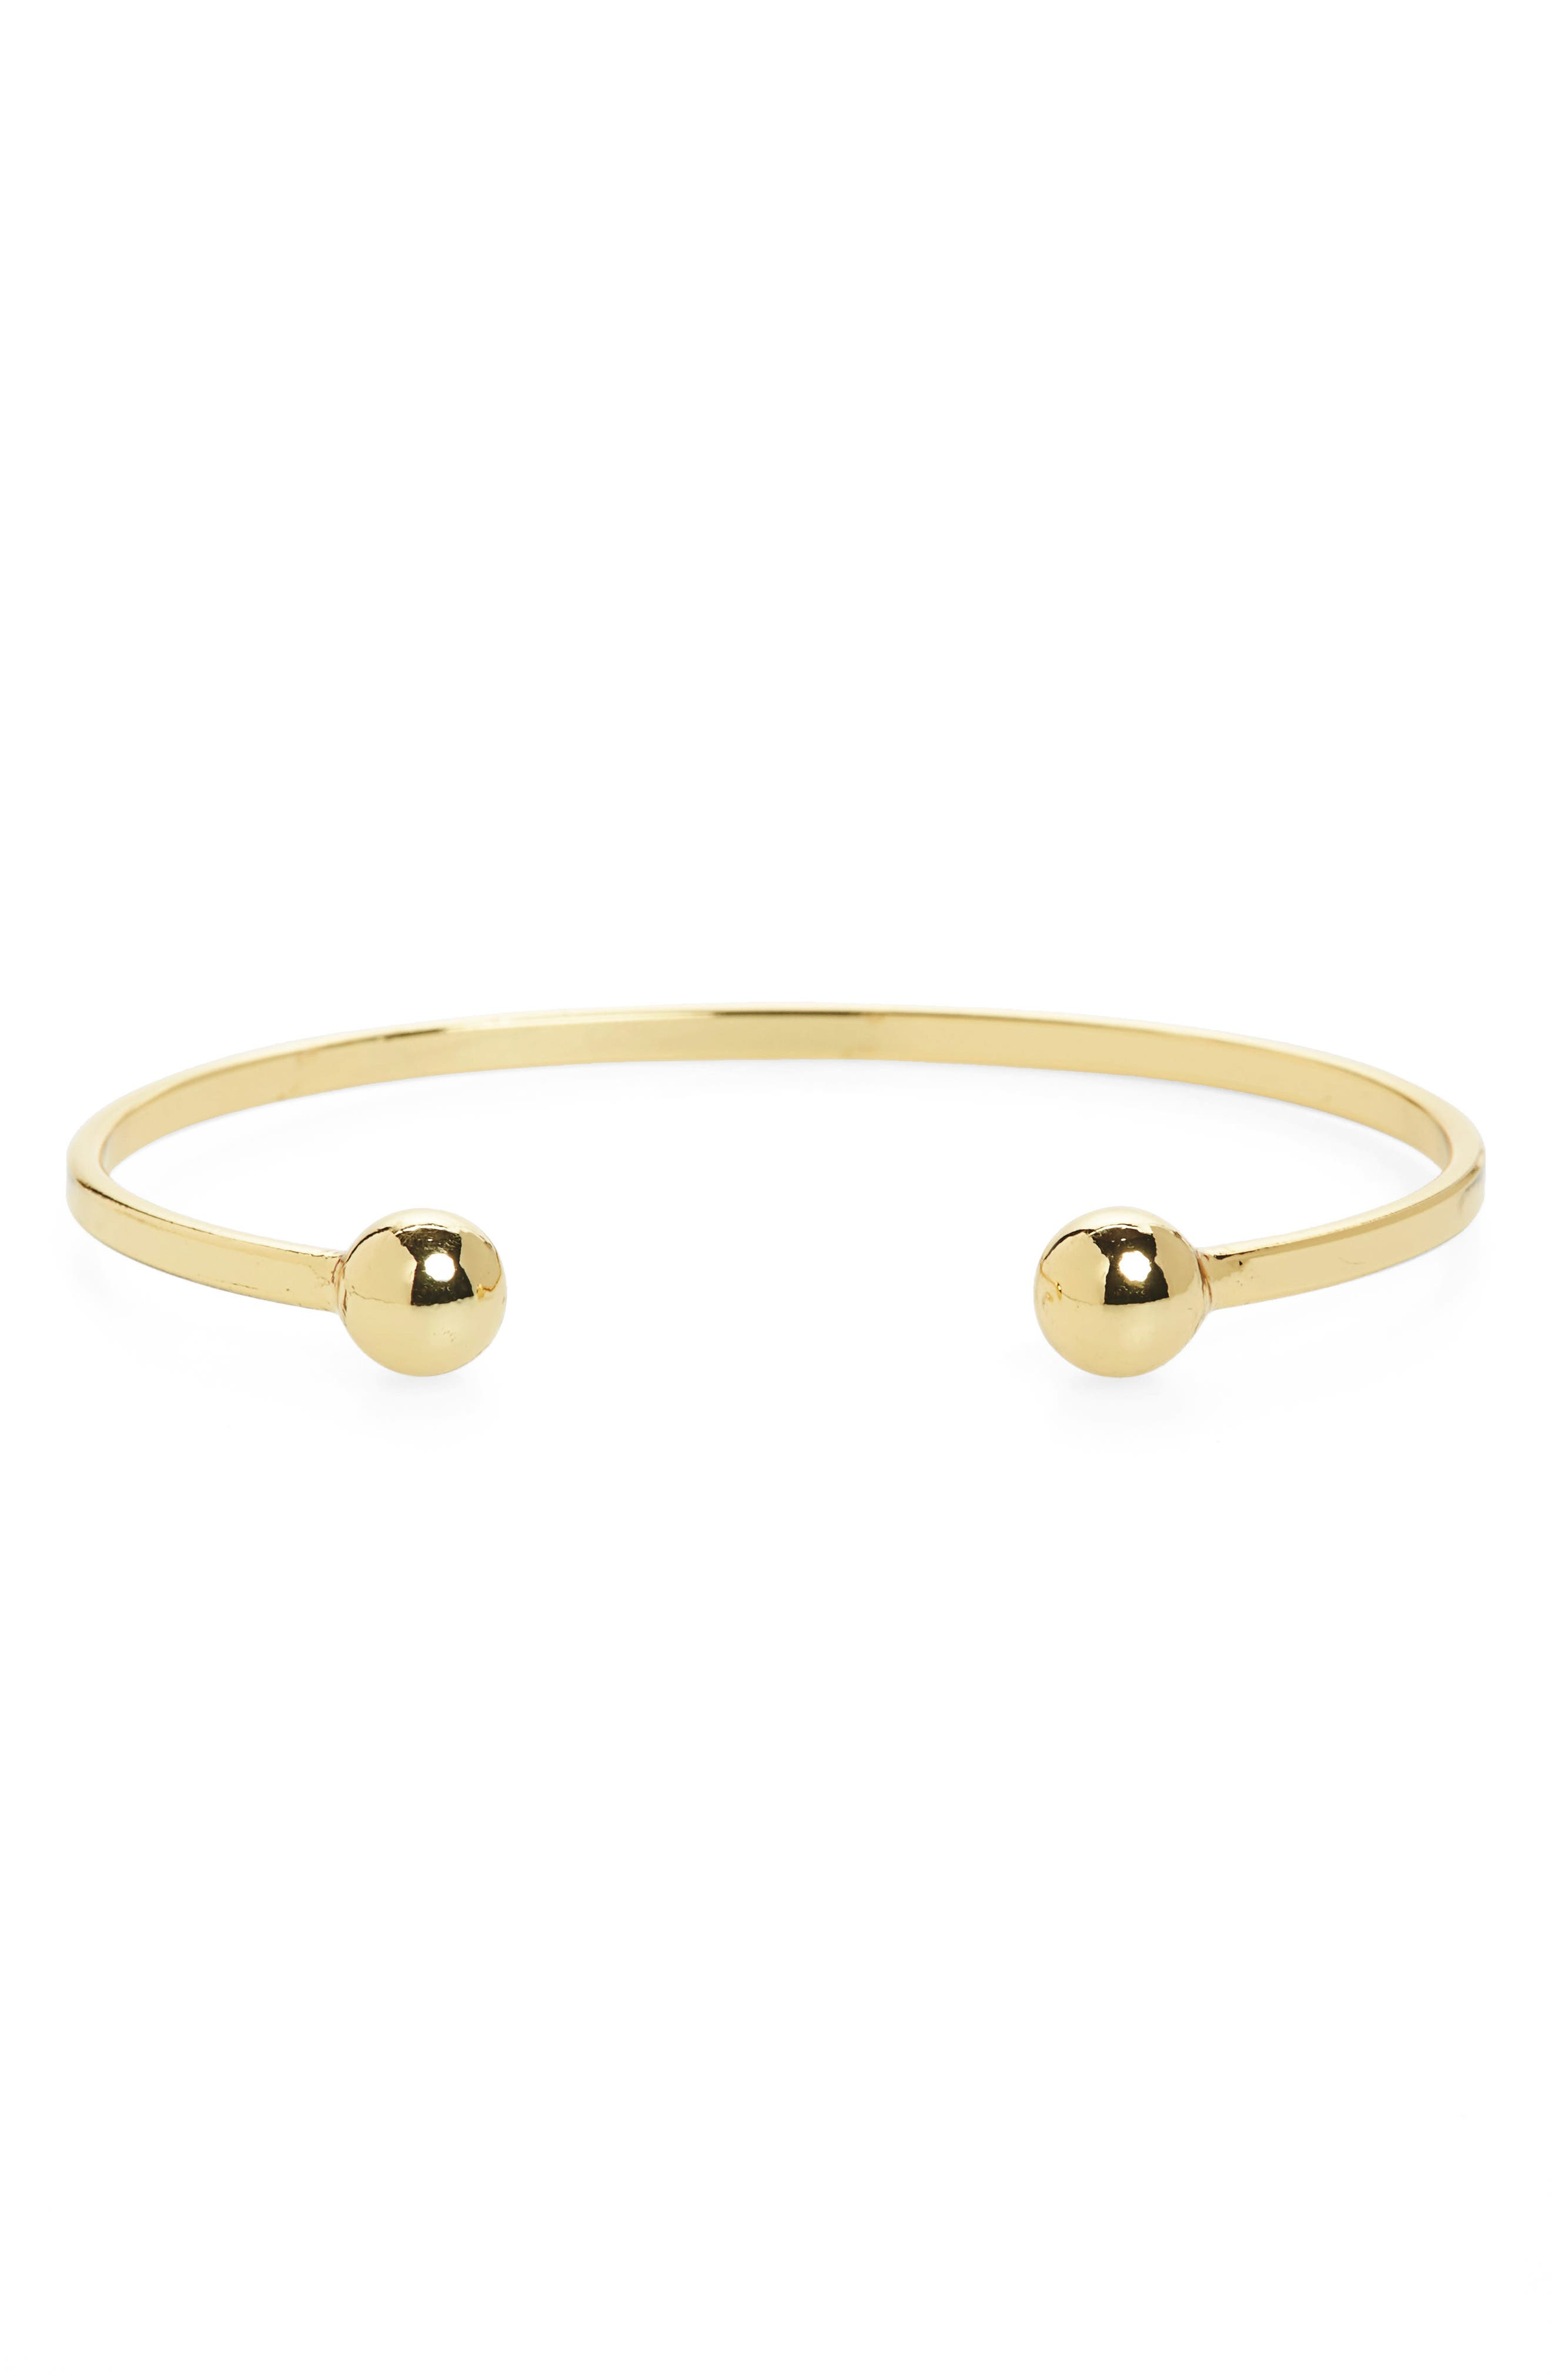 Main Image - Me to We Orb Bangle